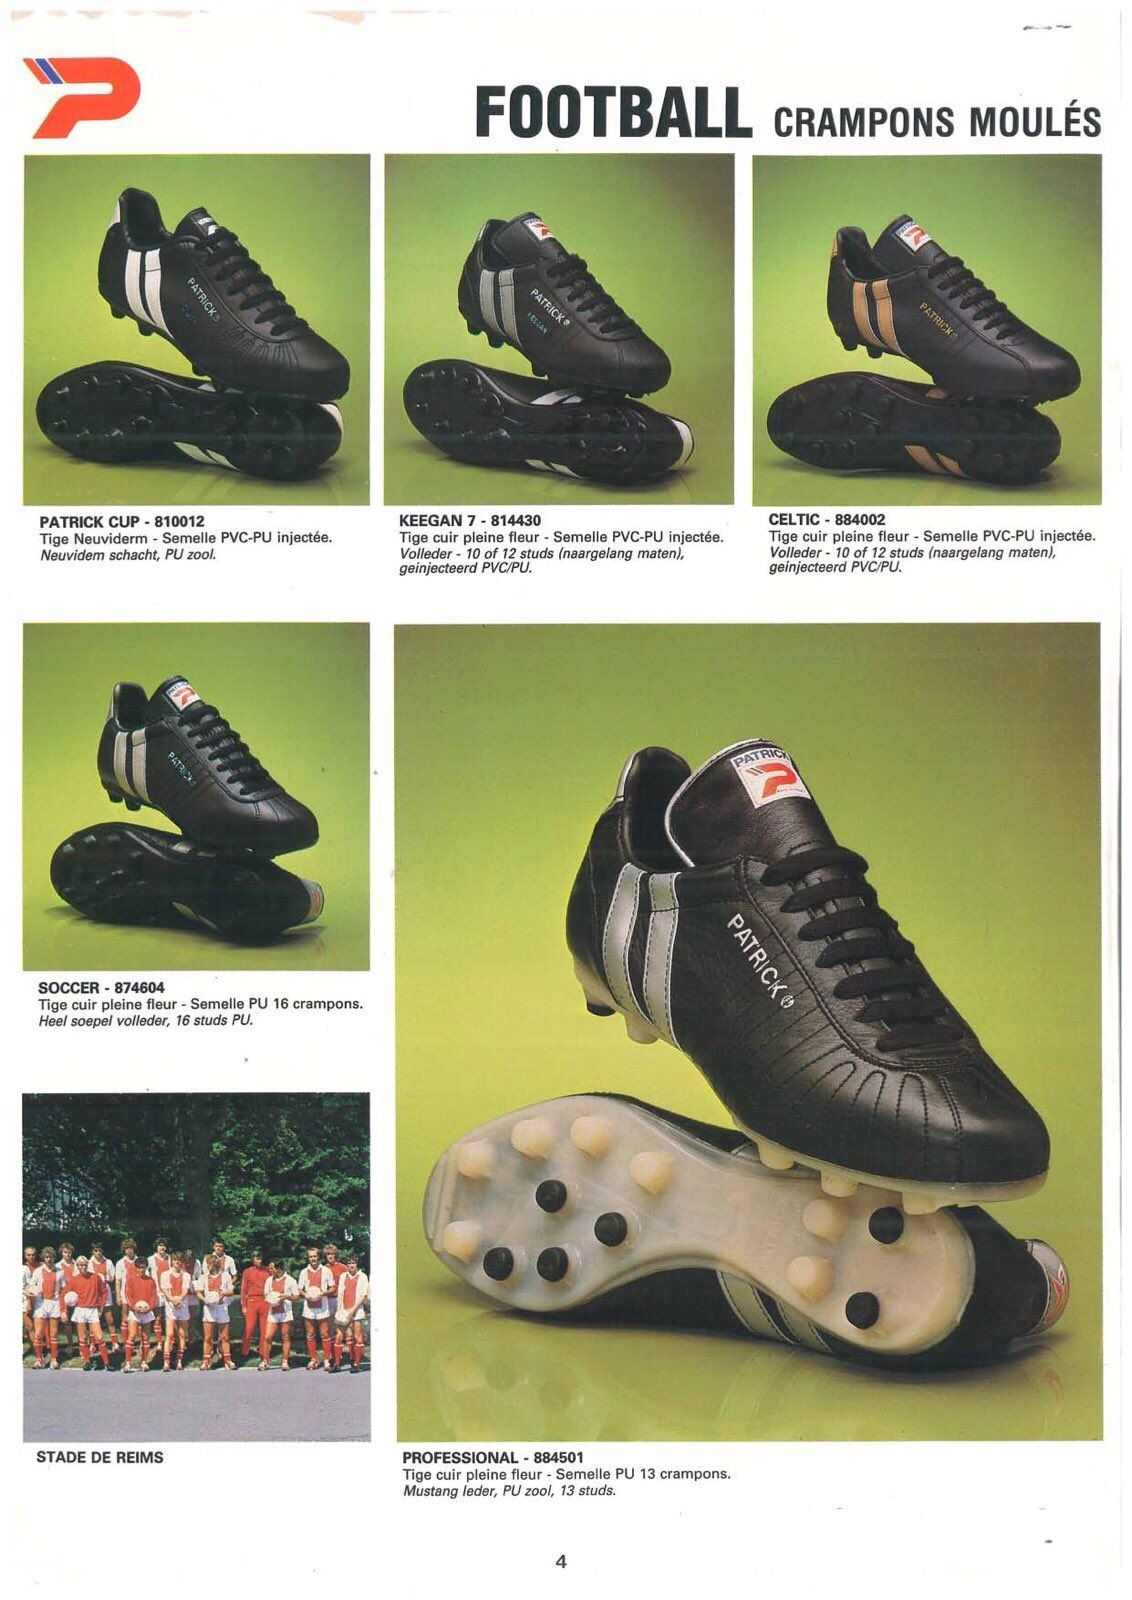 936ad78af 1983 Patrick Catalogue Pages. 1983 Patrick Catalogue Pages Soccer Boots ...